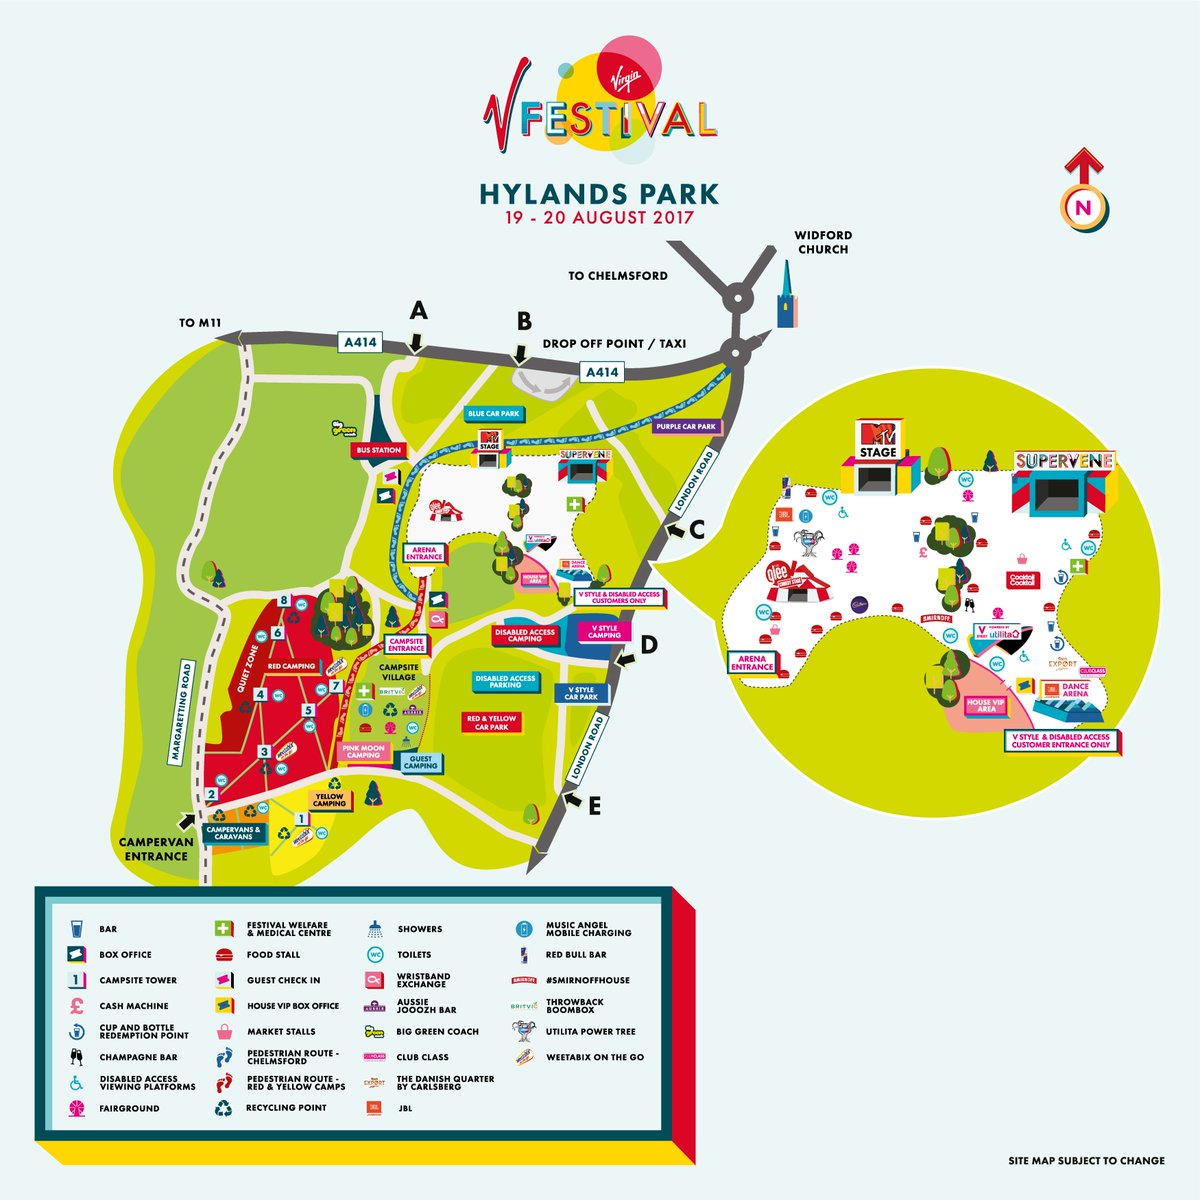 V Festival Hylands Park Map V FESTIVAL on Twitter: